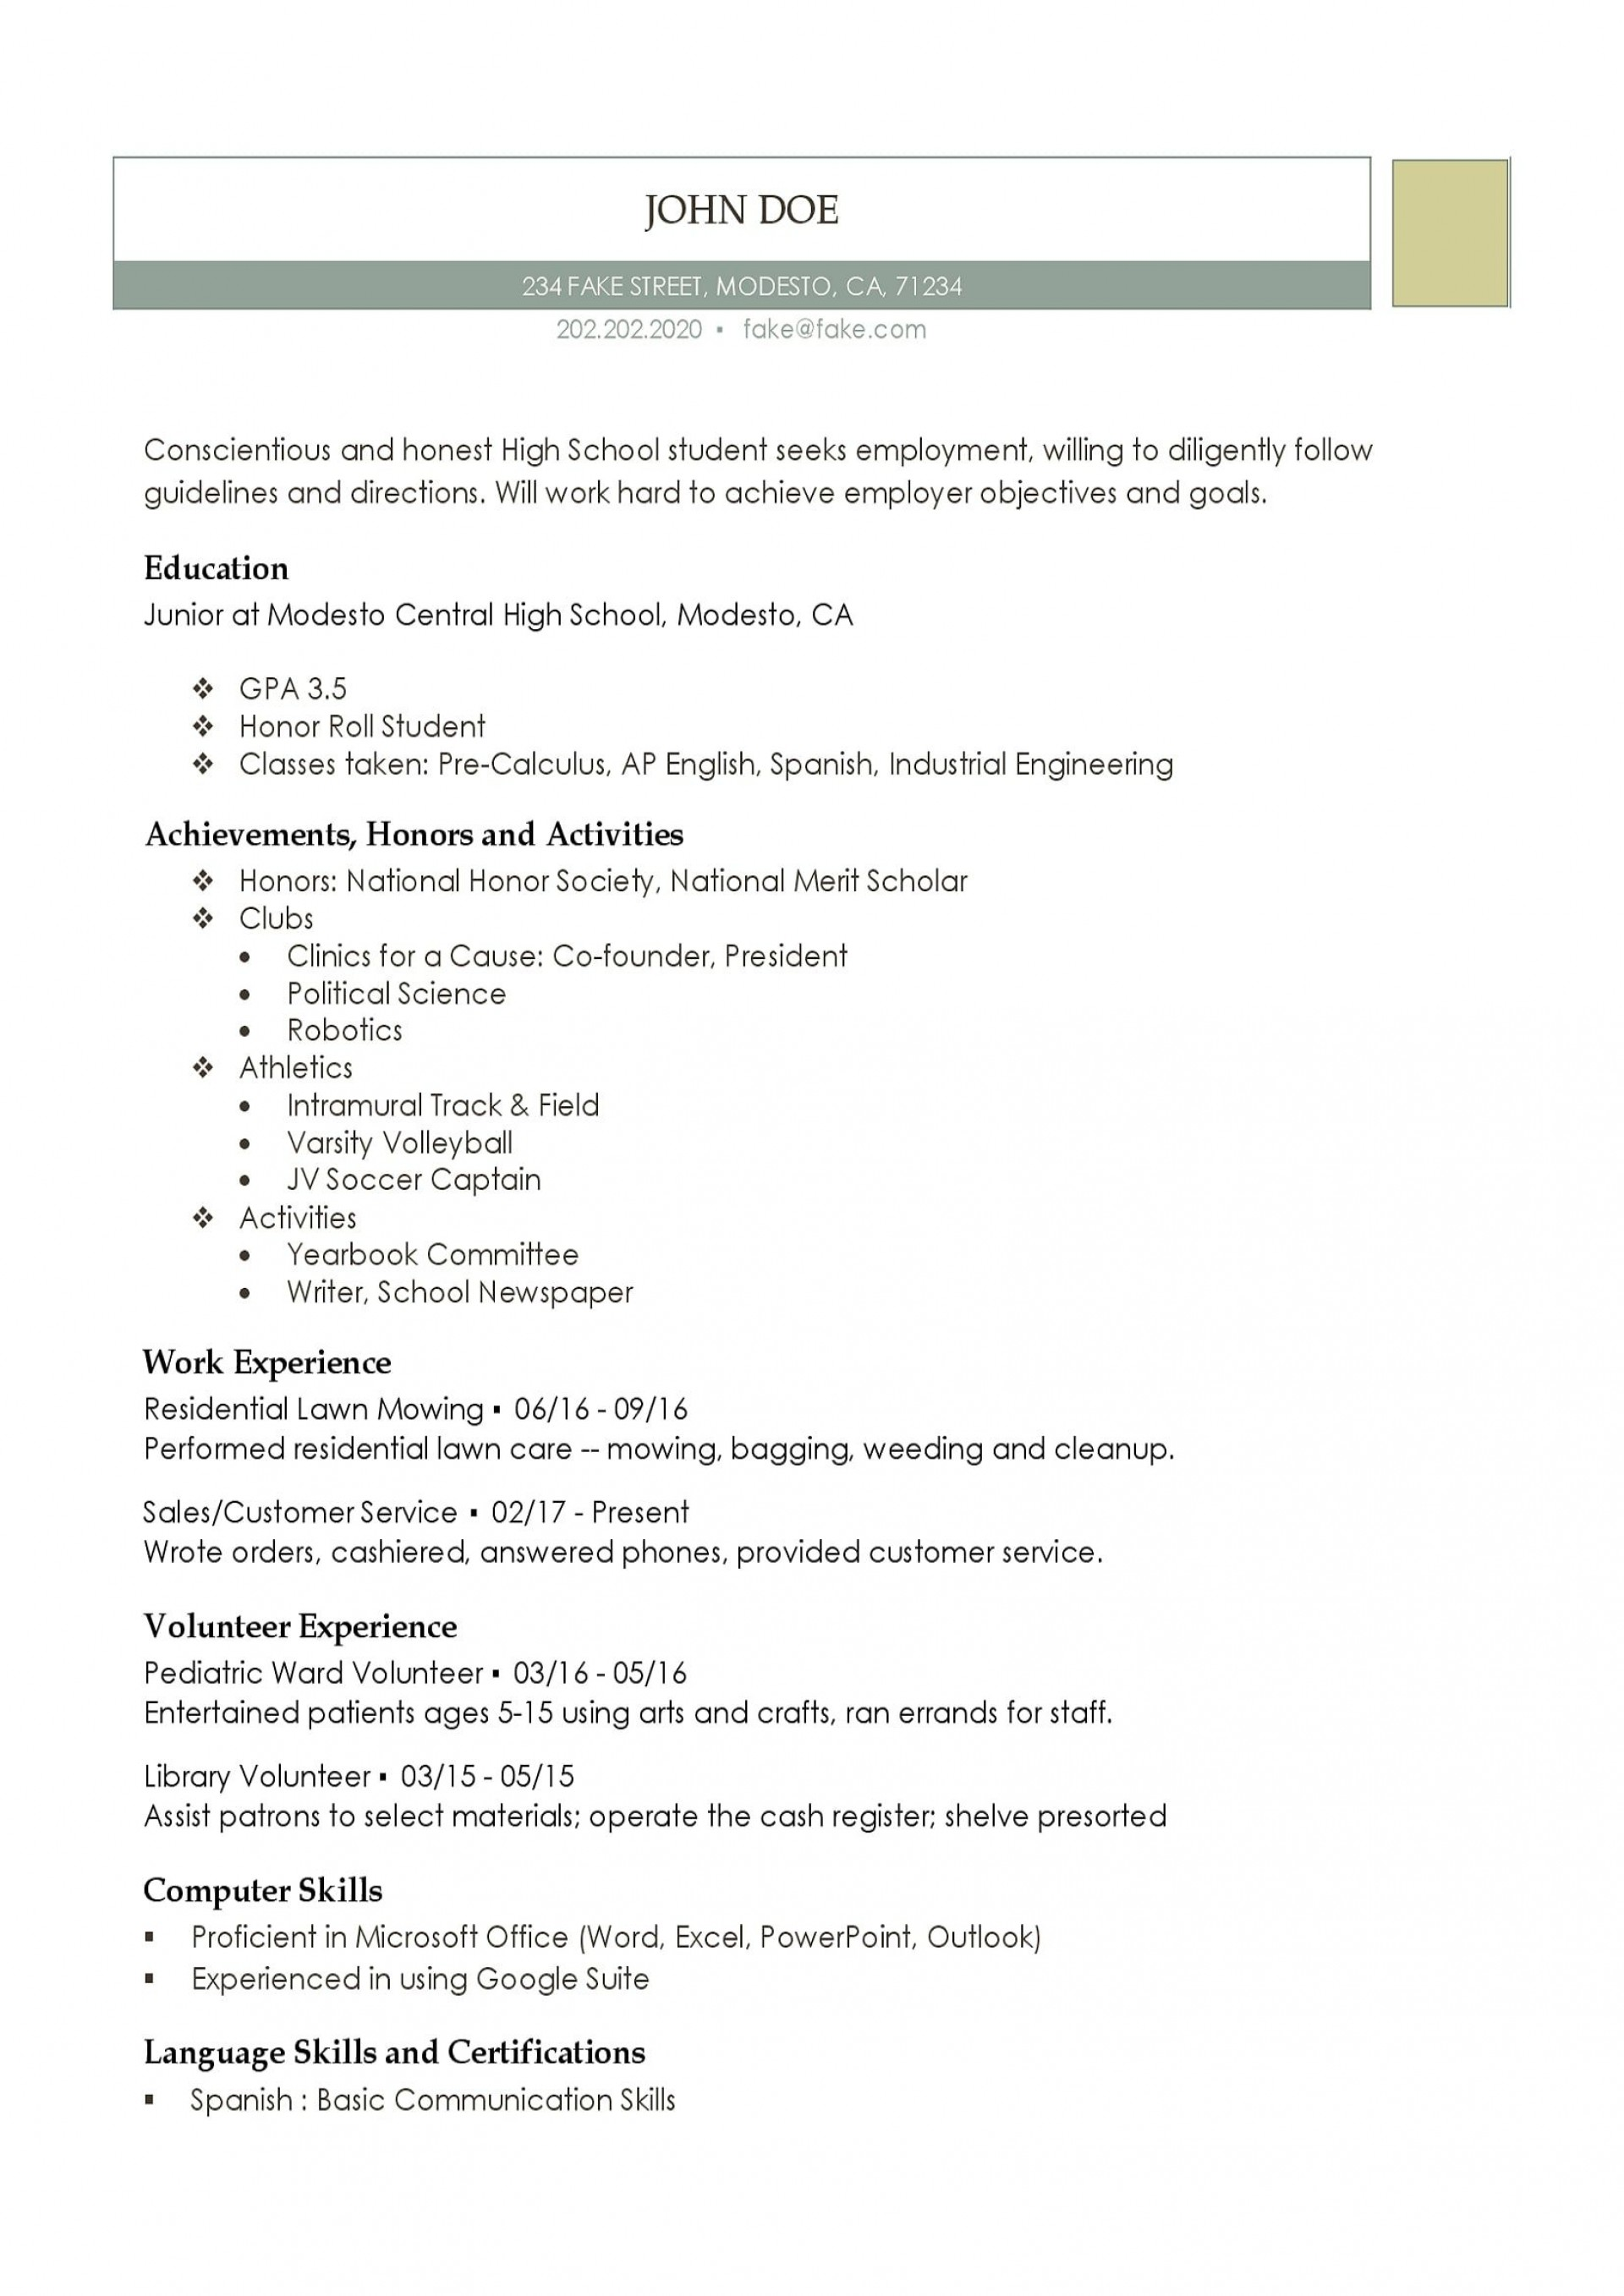 002 Incredible Student Resume Template Word Image  High School Free College Microsoft Download1920